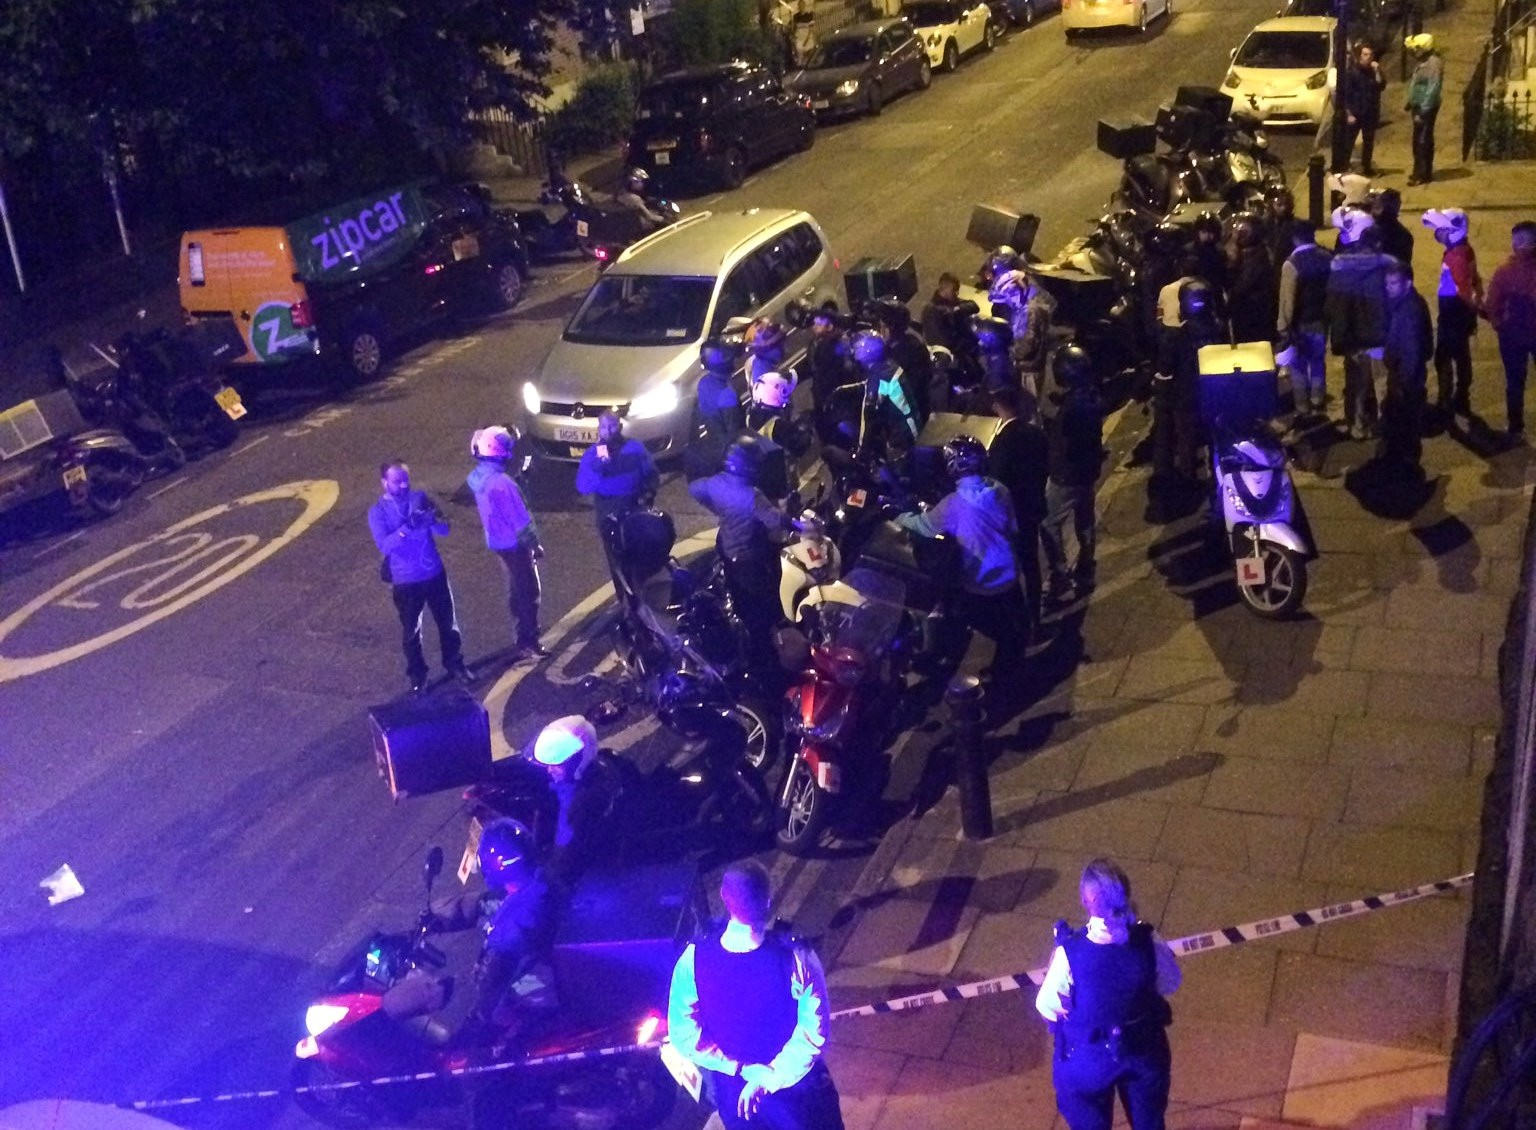 Emergency response following acid attack on the junction of Hackney Road junction with Queensbridge Road, London, July 13, 2017 in the picture obtained from social media.